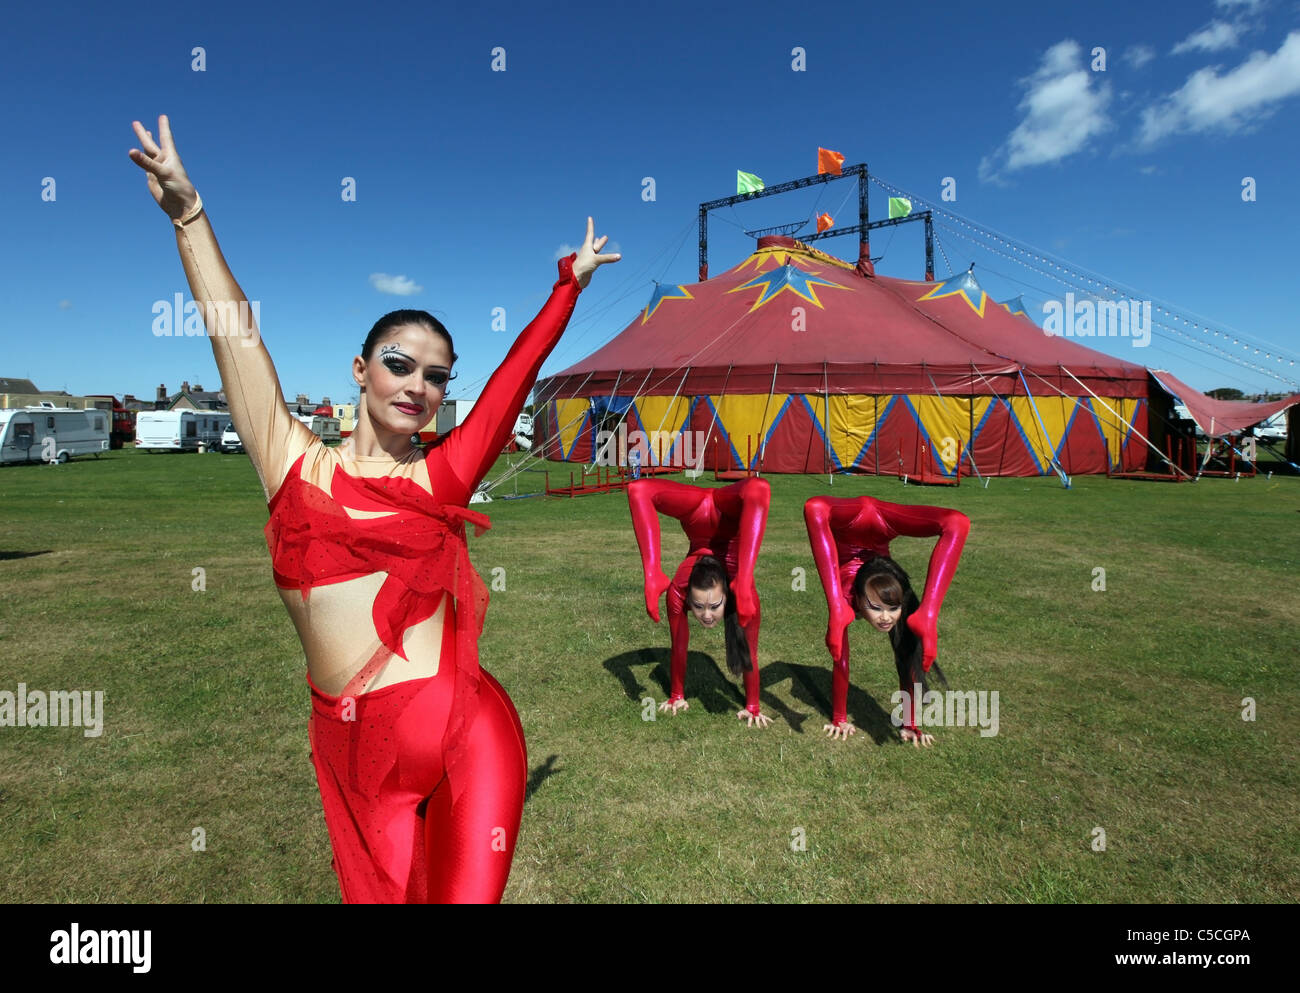 Female performers outside Zippos circus tent at a performance in the UK Stock Photo